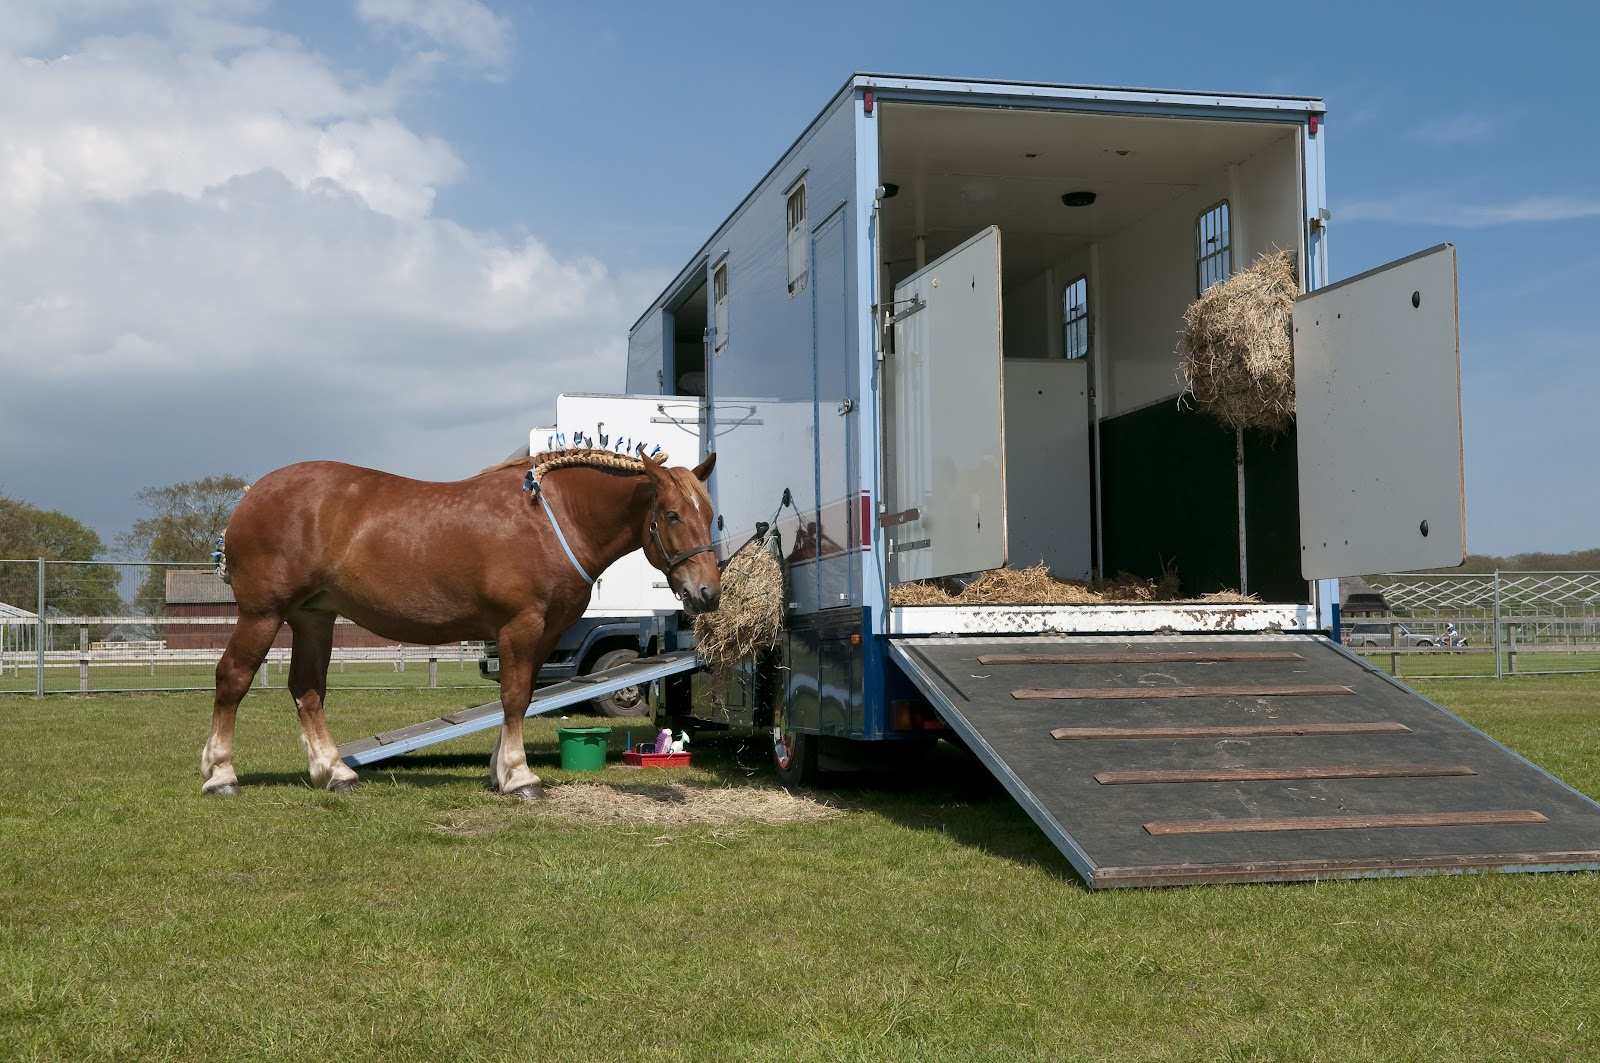 Horse next to trailer